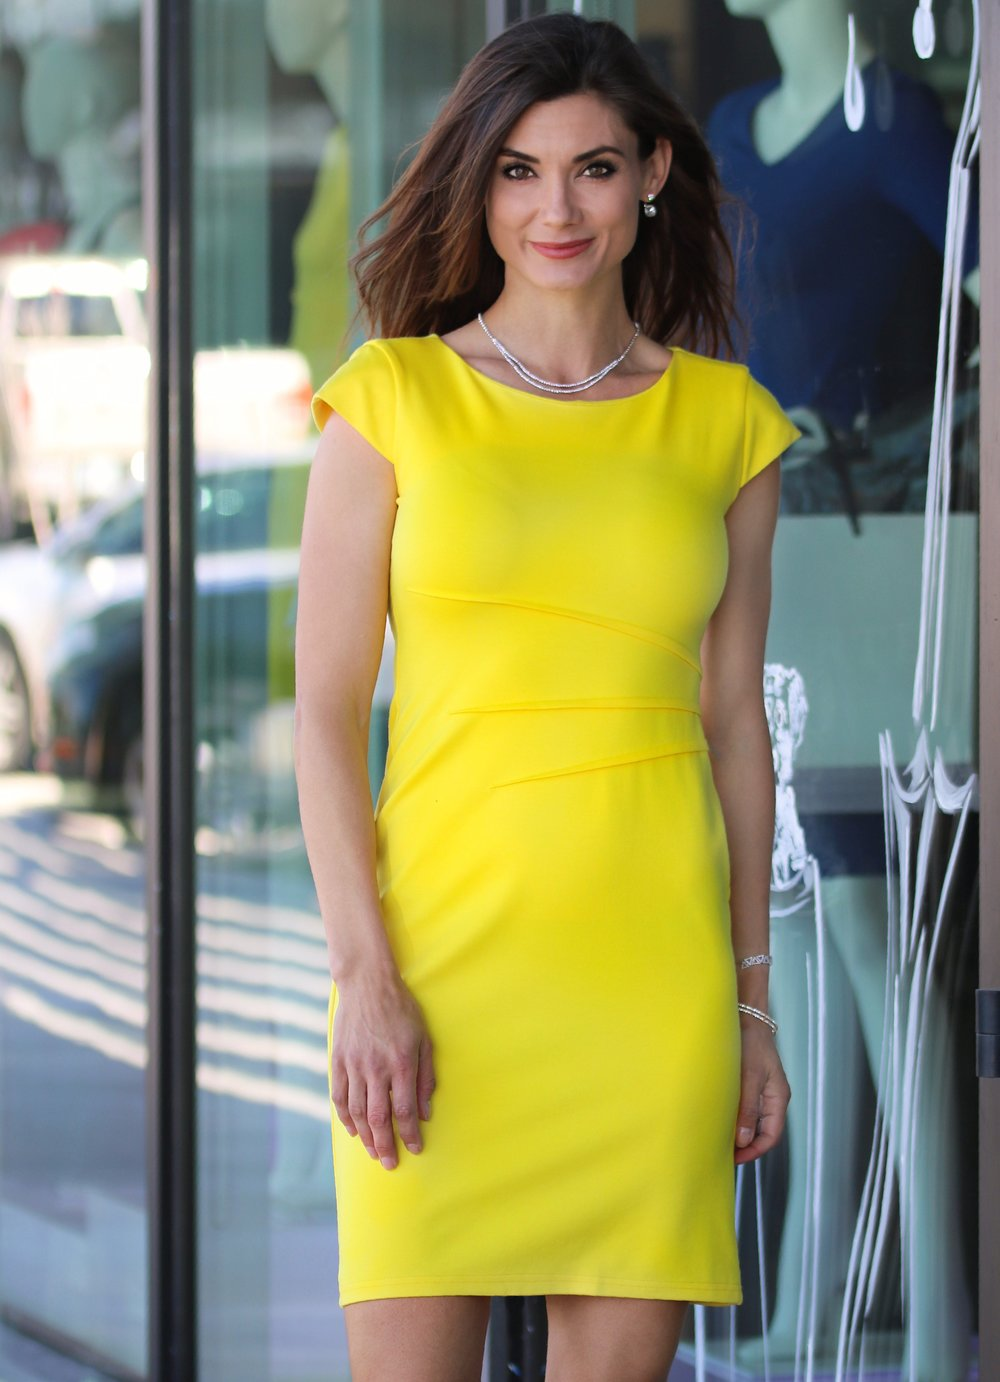 NoraGardner_ReverseVerandaDress_Yellow_FullBody.jpg